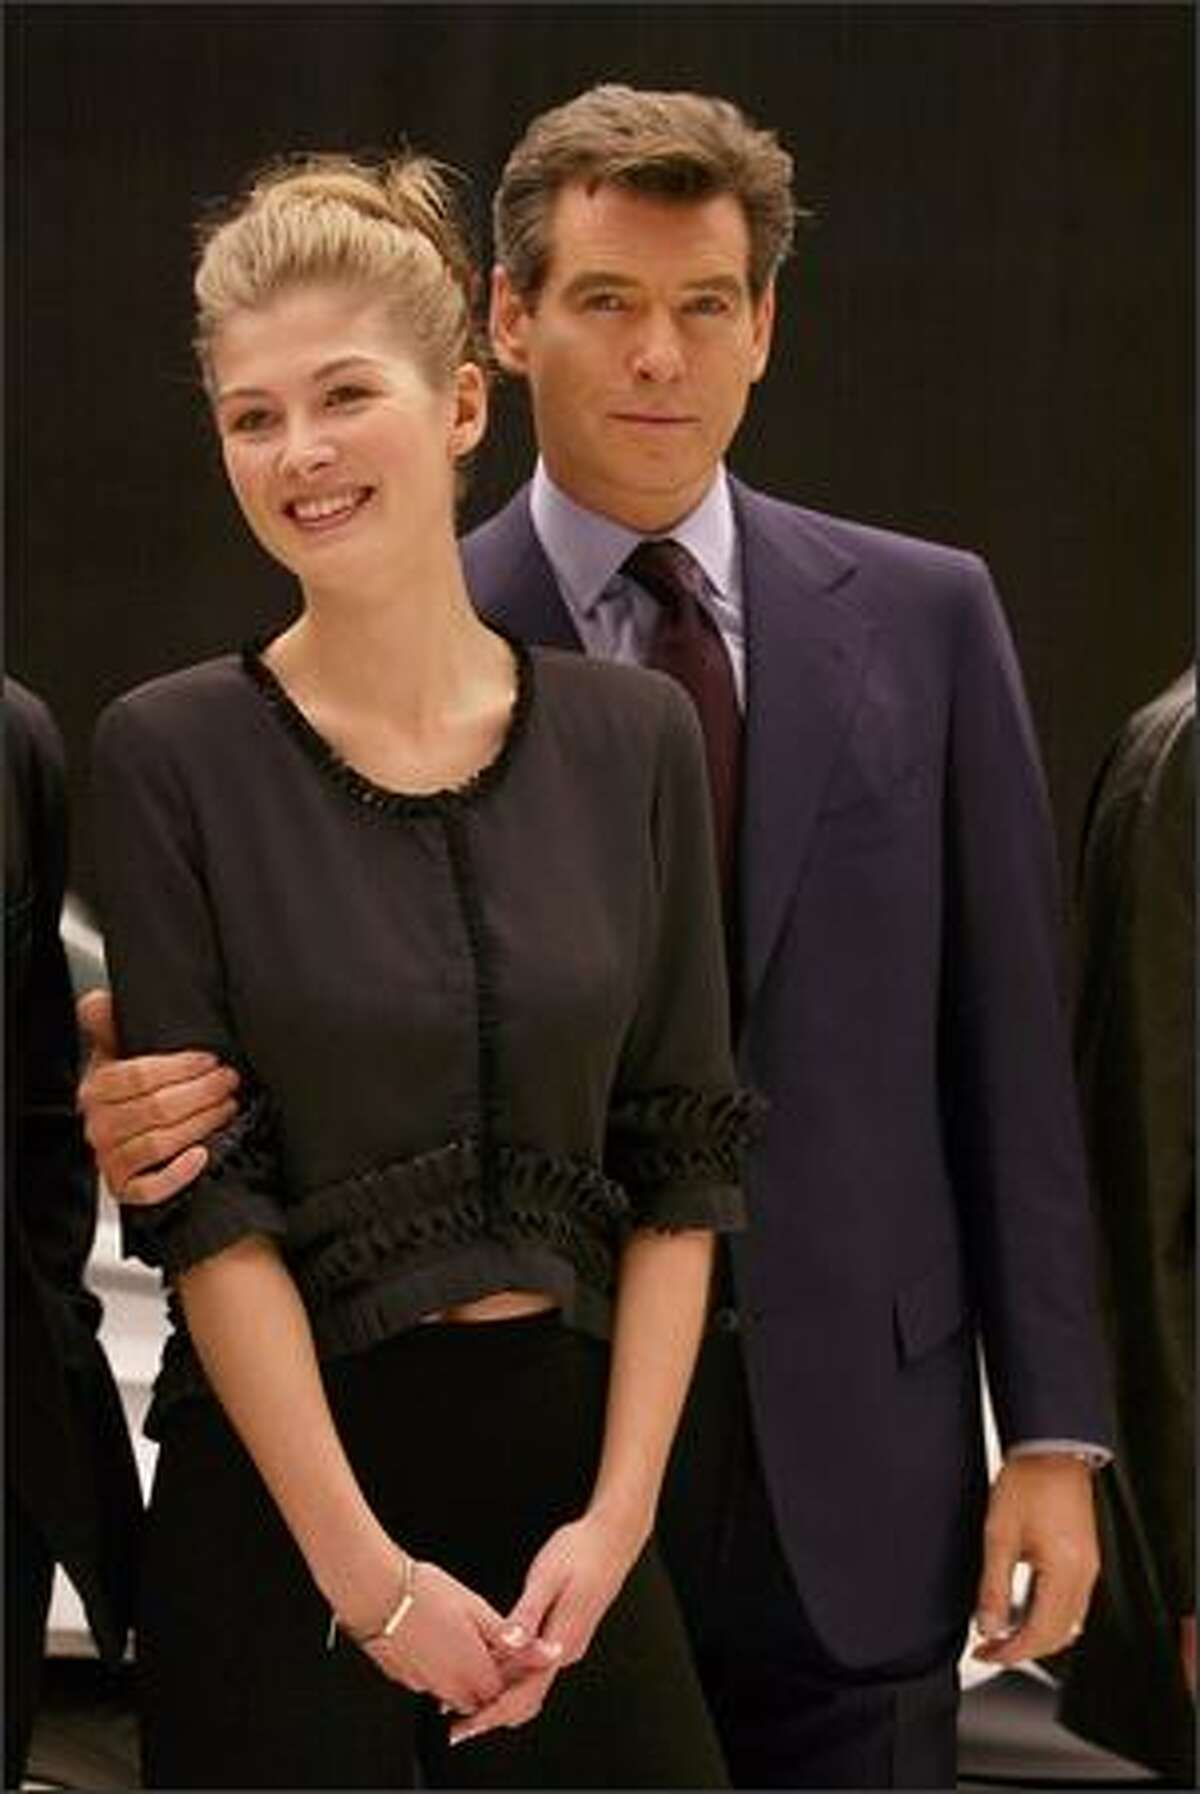 Rosamund Pike and Pierce Brosnan at Pinewood Studios, England, for the launch of